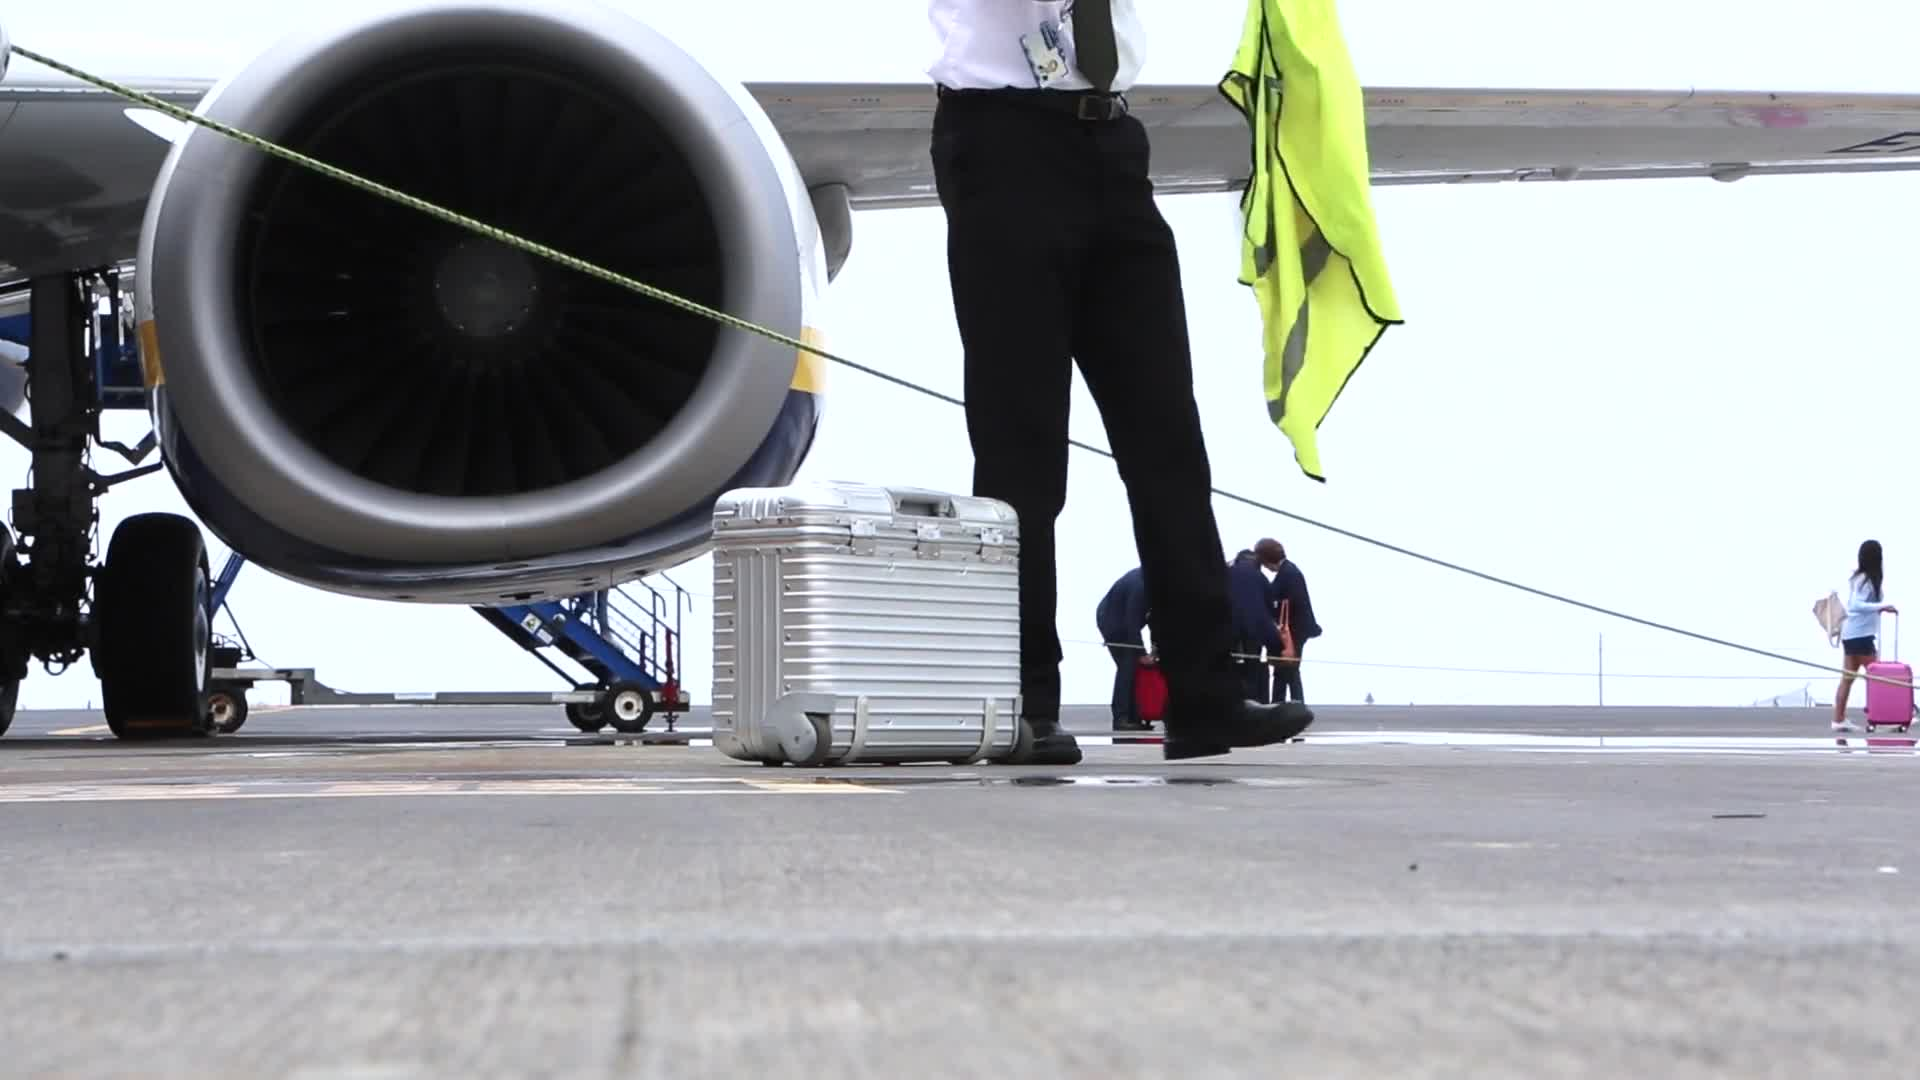 Tarmac airport turbine luggage transportation